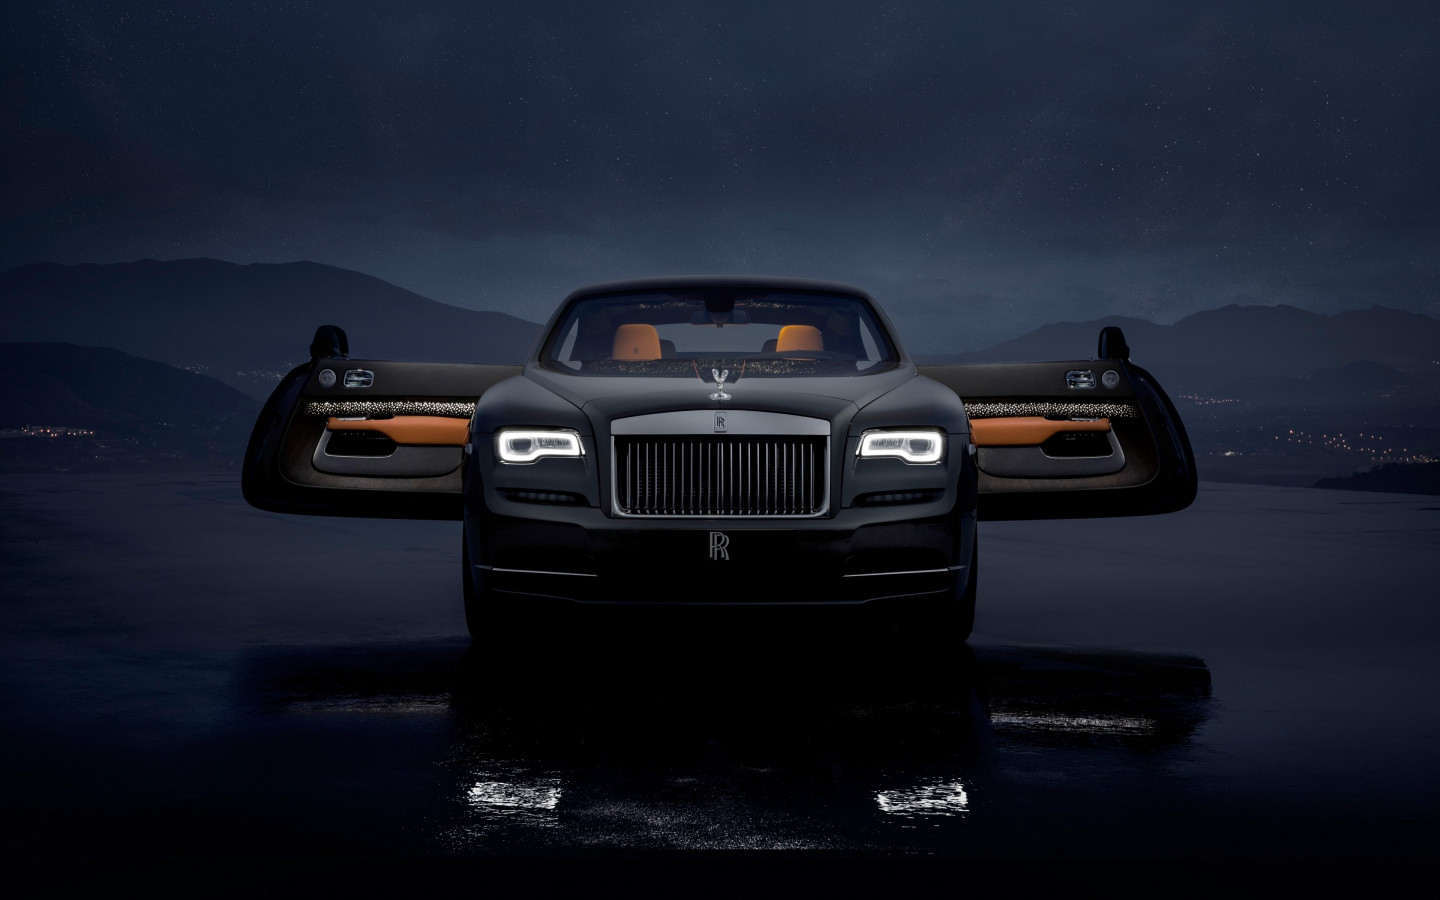 Rolls Royce Wraith Luminary Collection wallpaper 1440x900